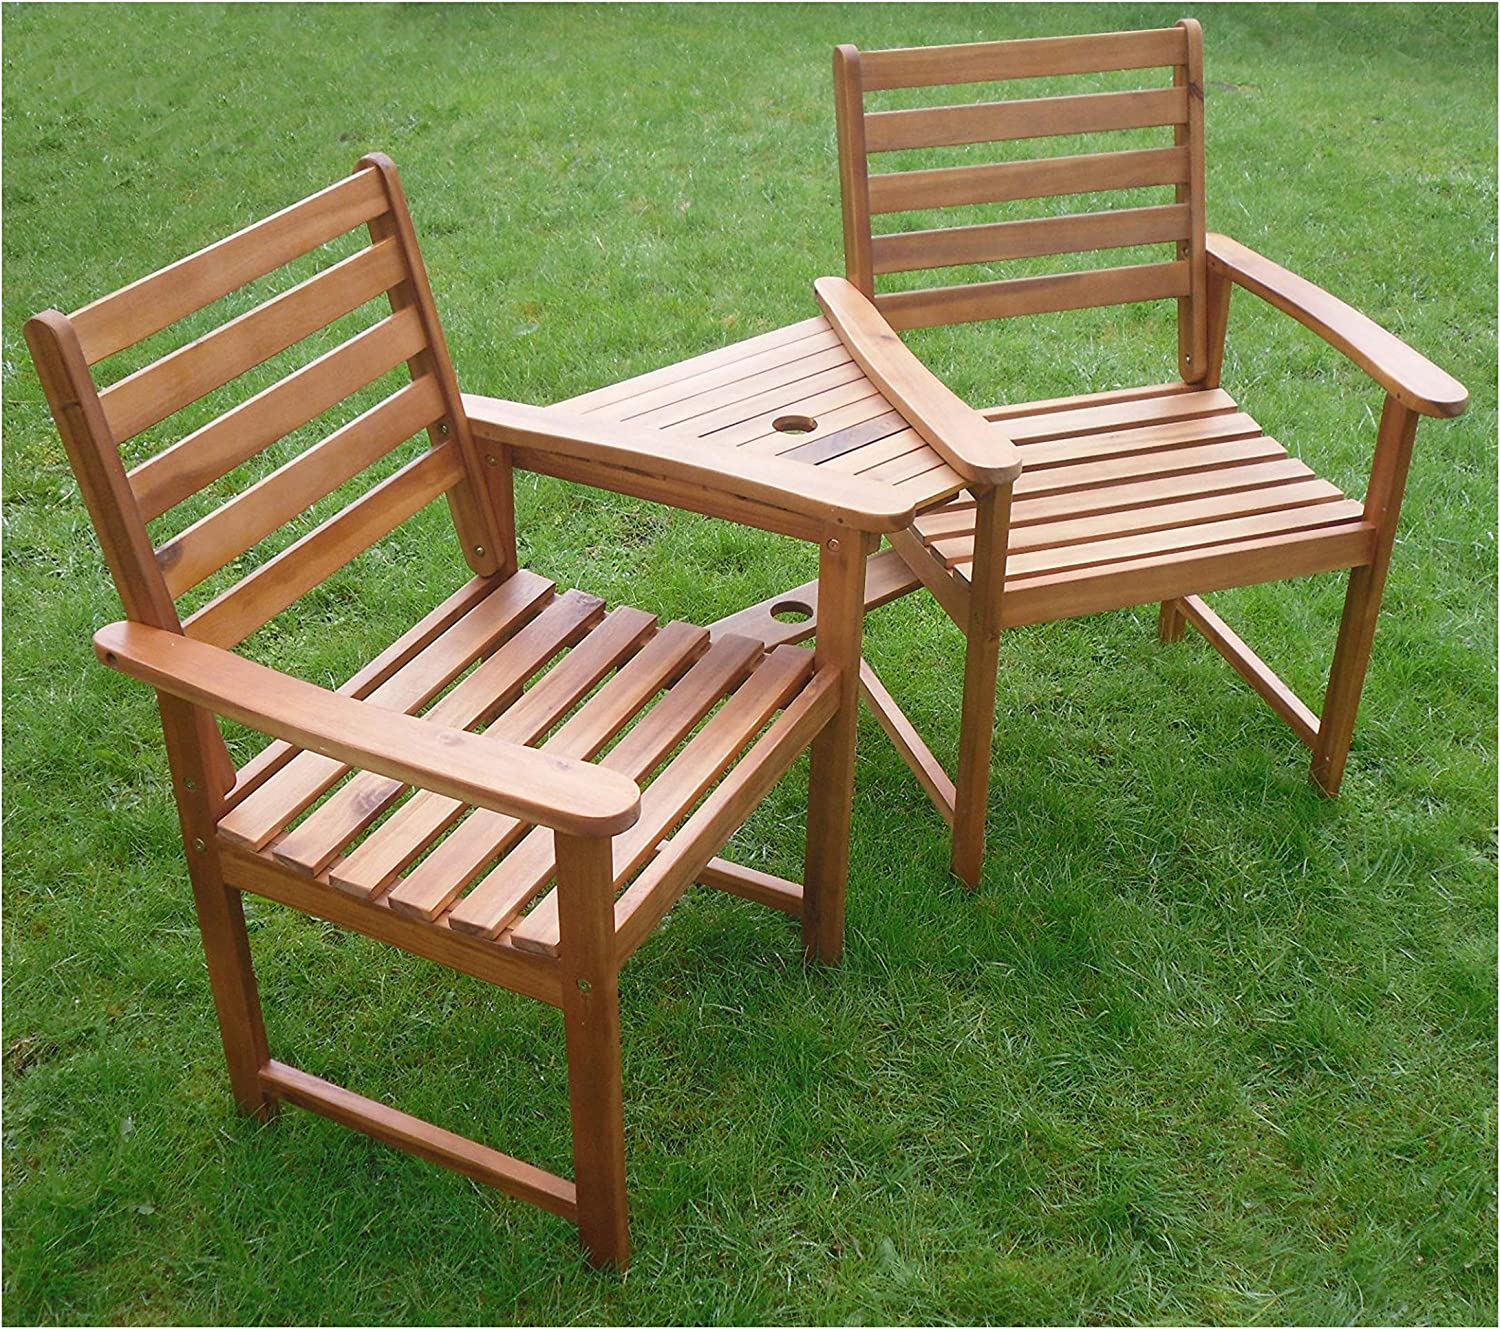 Ascot Hardwood Garden Bench Companion Set Love Seat Great Outdoor Furniture For Your Garden Or Patio Amazon Co Uk Garden Outdoors